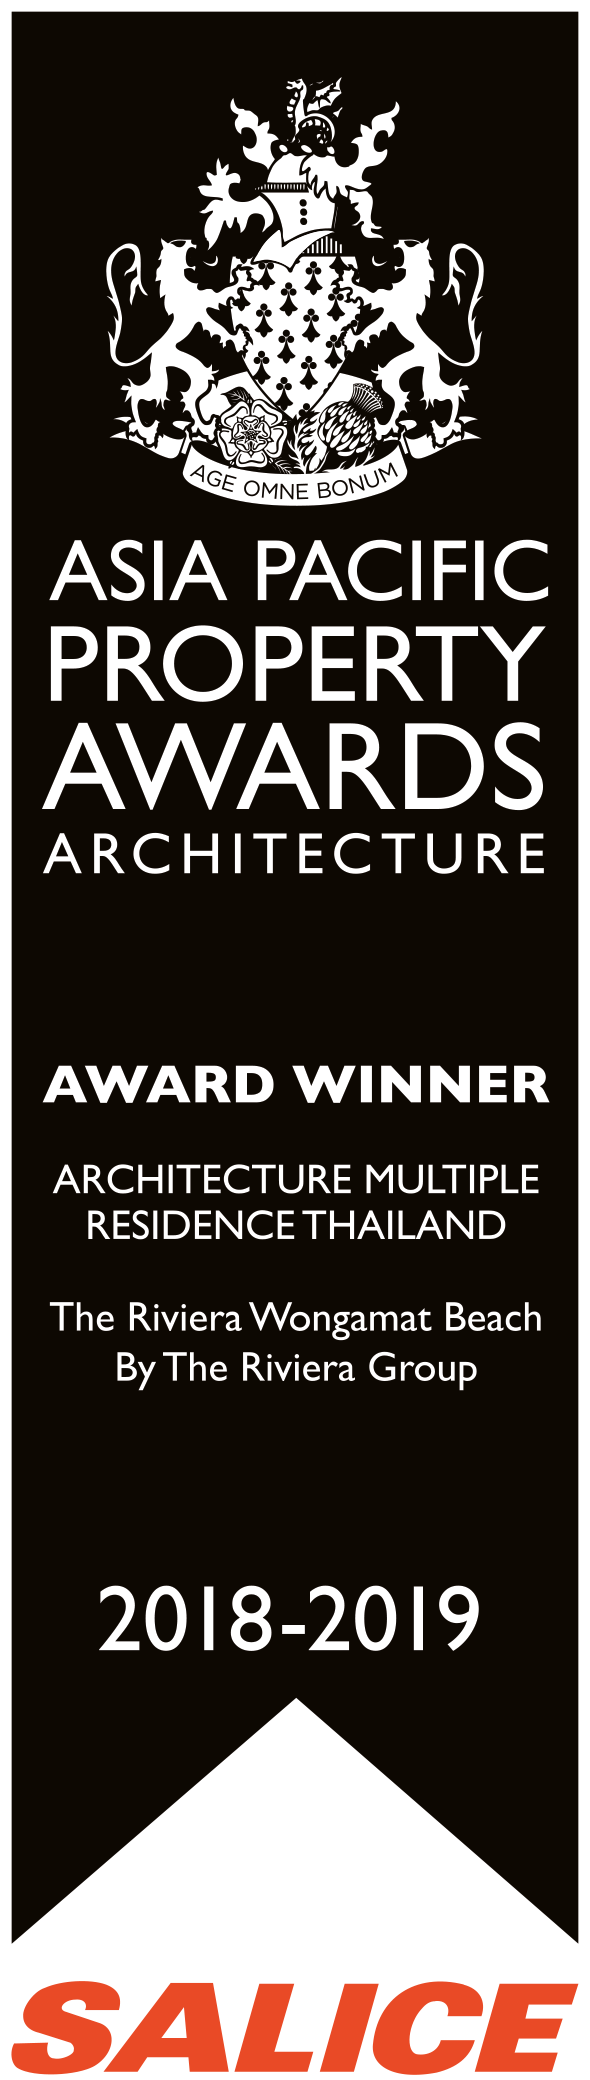 Architecture Multiple Residence Thailand